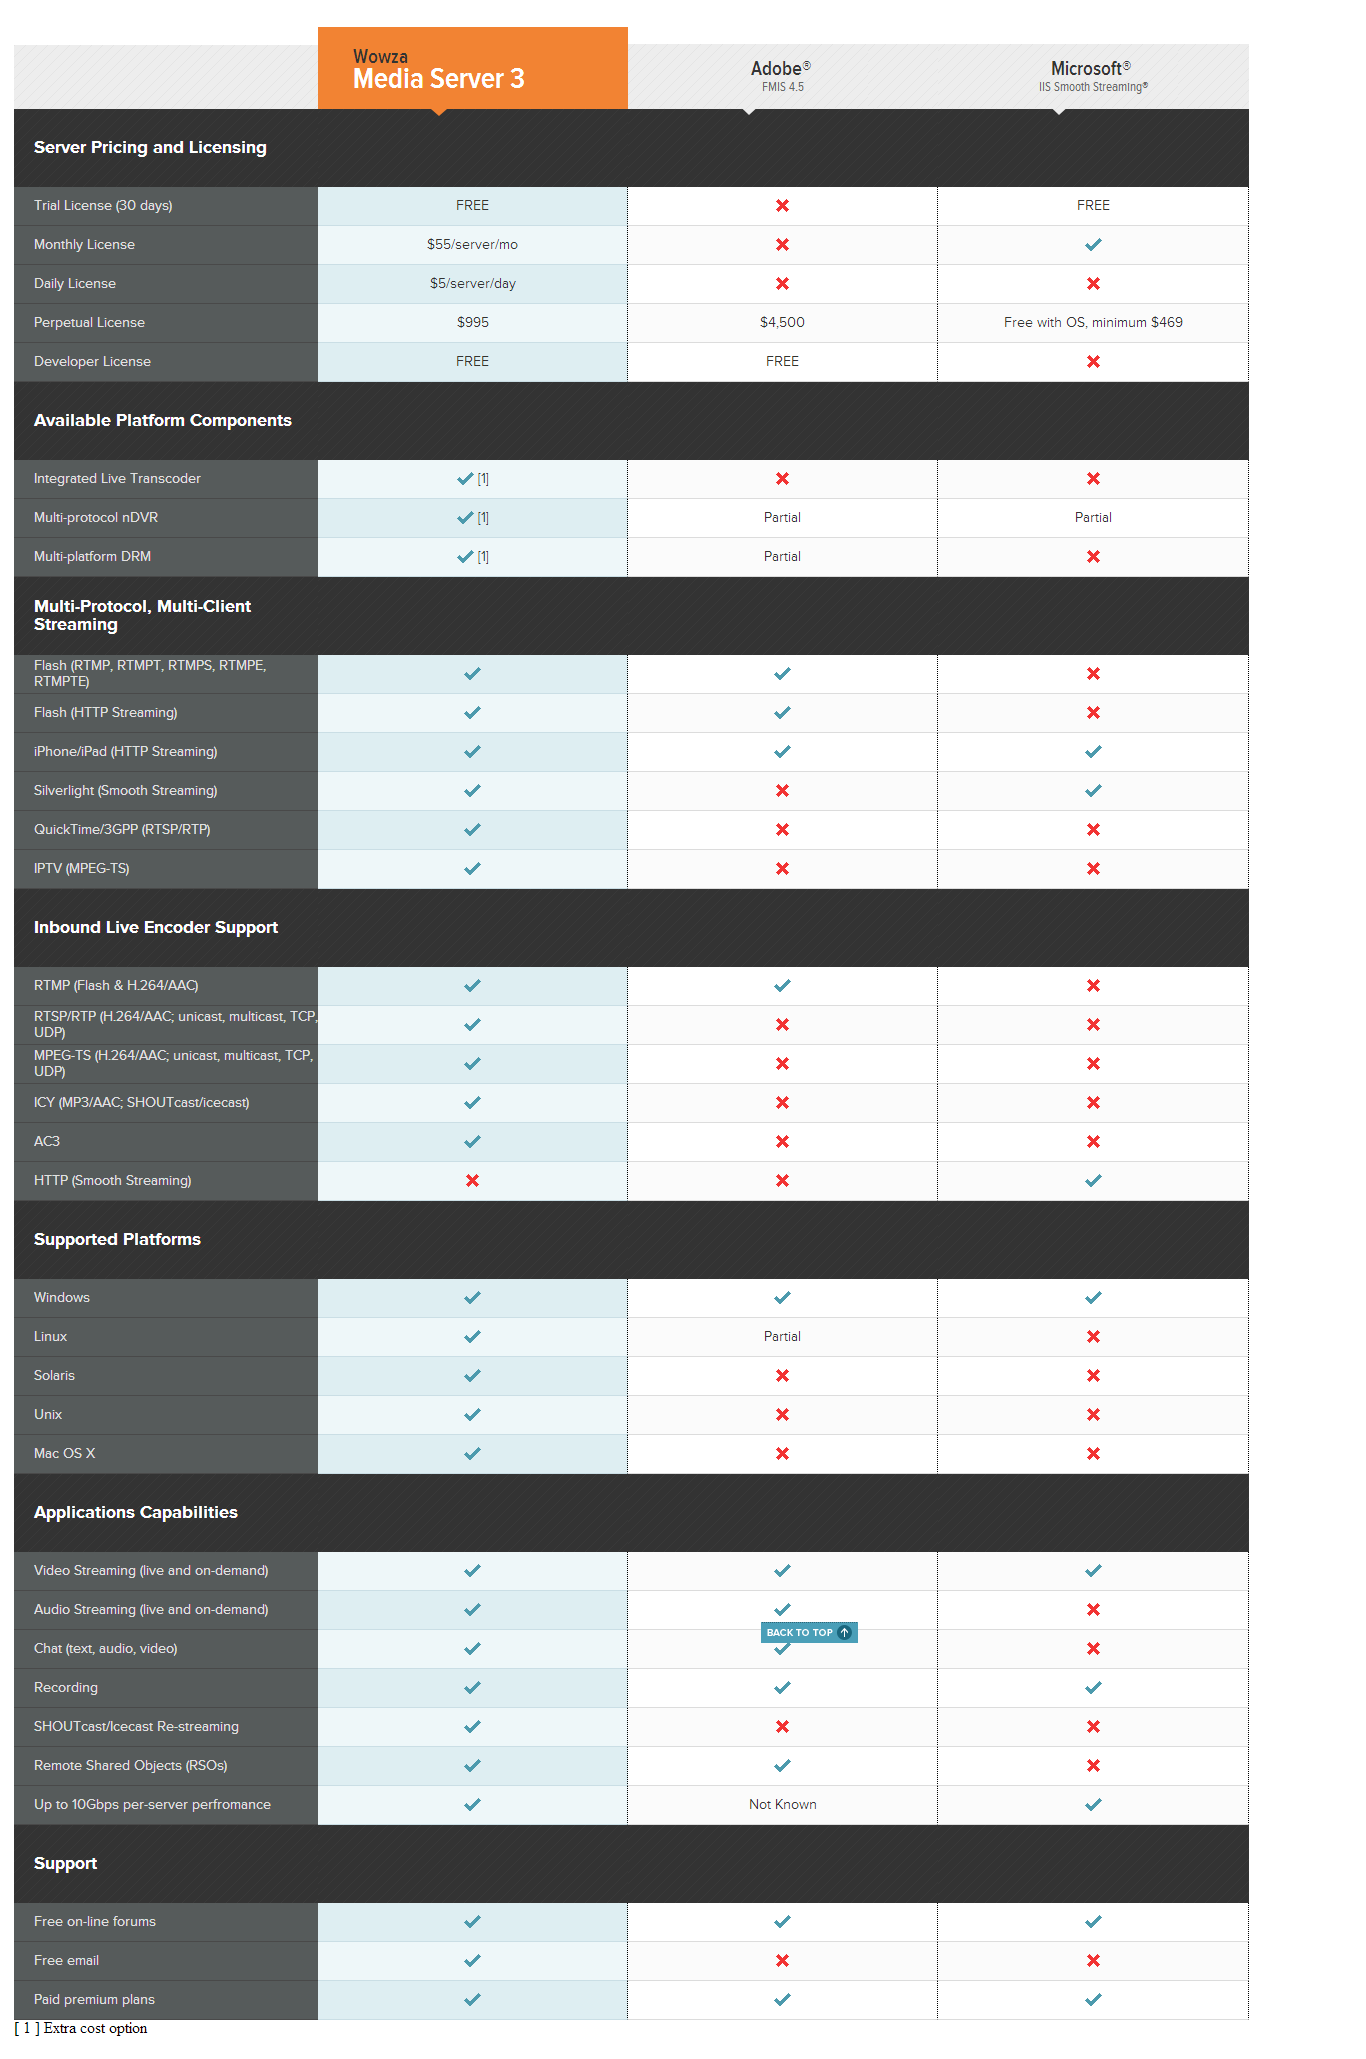 Comparison between Wowza, Adobe FMIS and Microsoft IIS